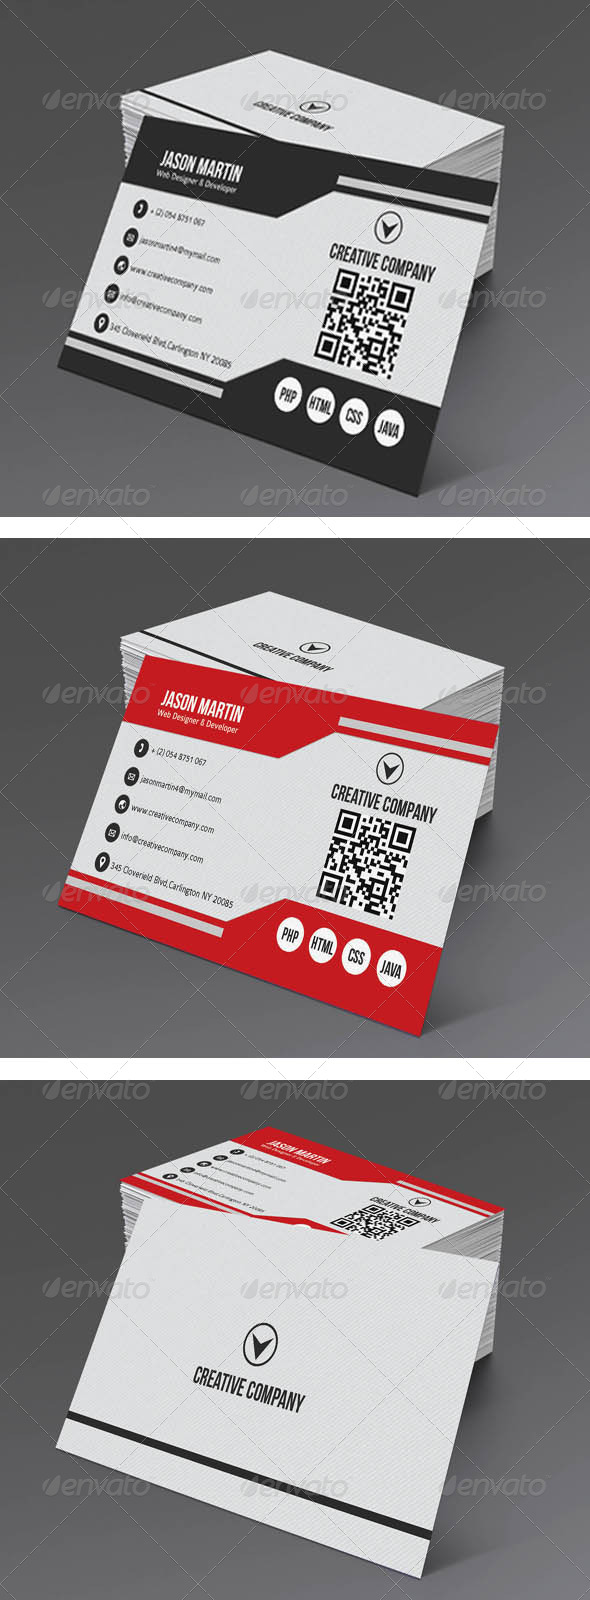 GraphicRiver Simple Corporate Business Card 5174225